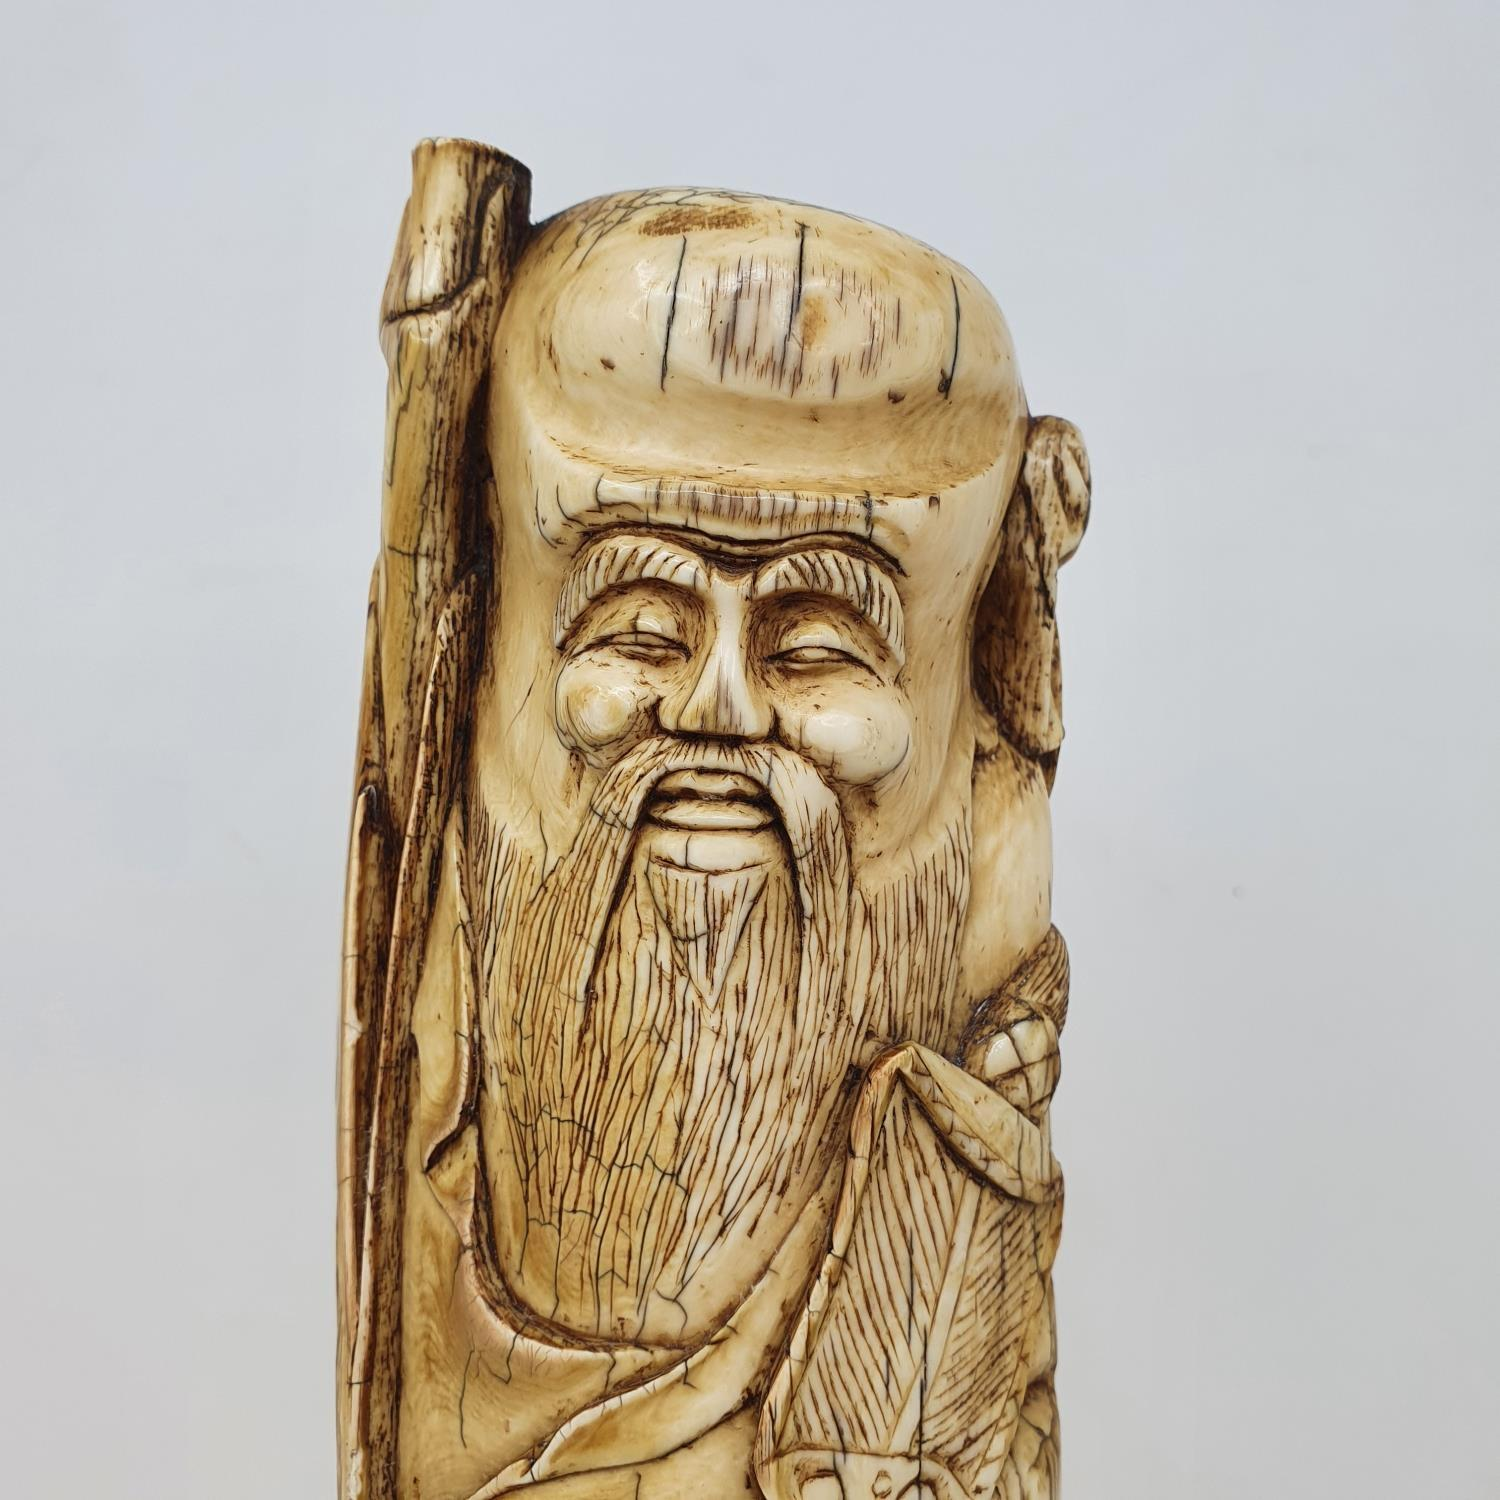 An early 20th century Chinese ivory tusk, carved in the form of Shou Lao, 28 cm high - Image 5 of 5